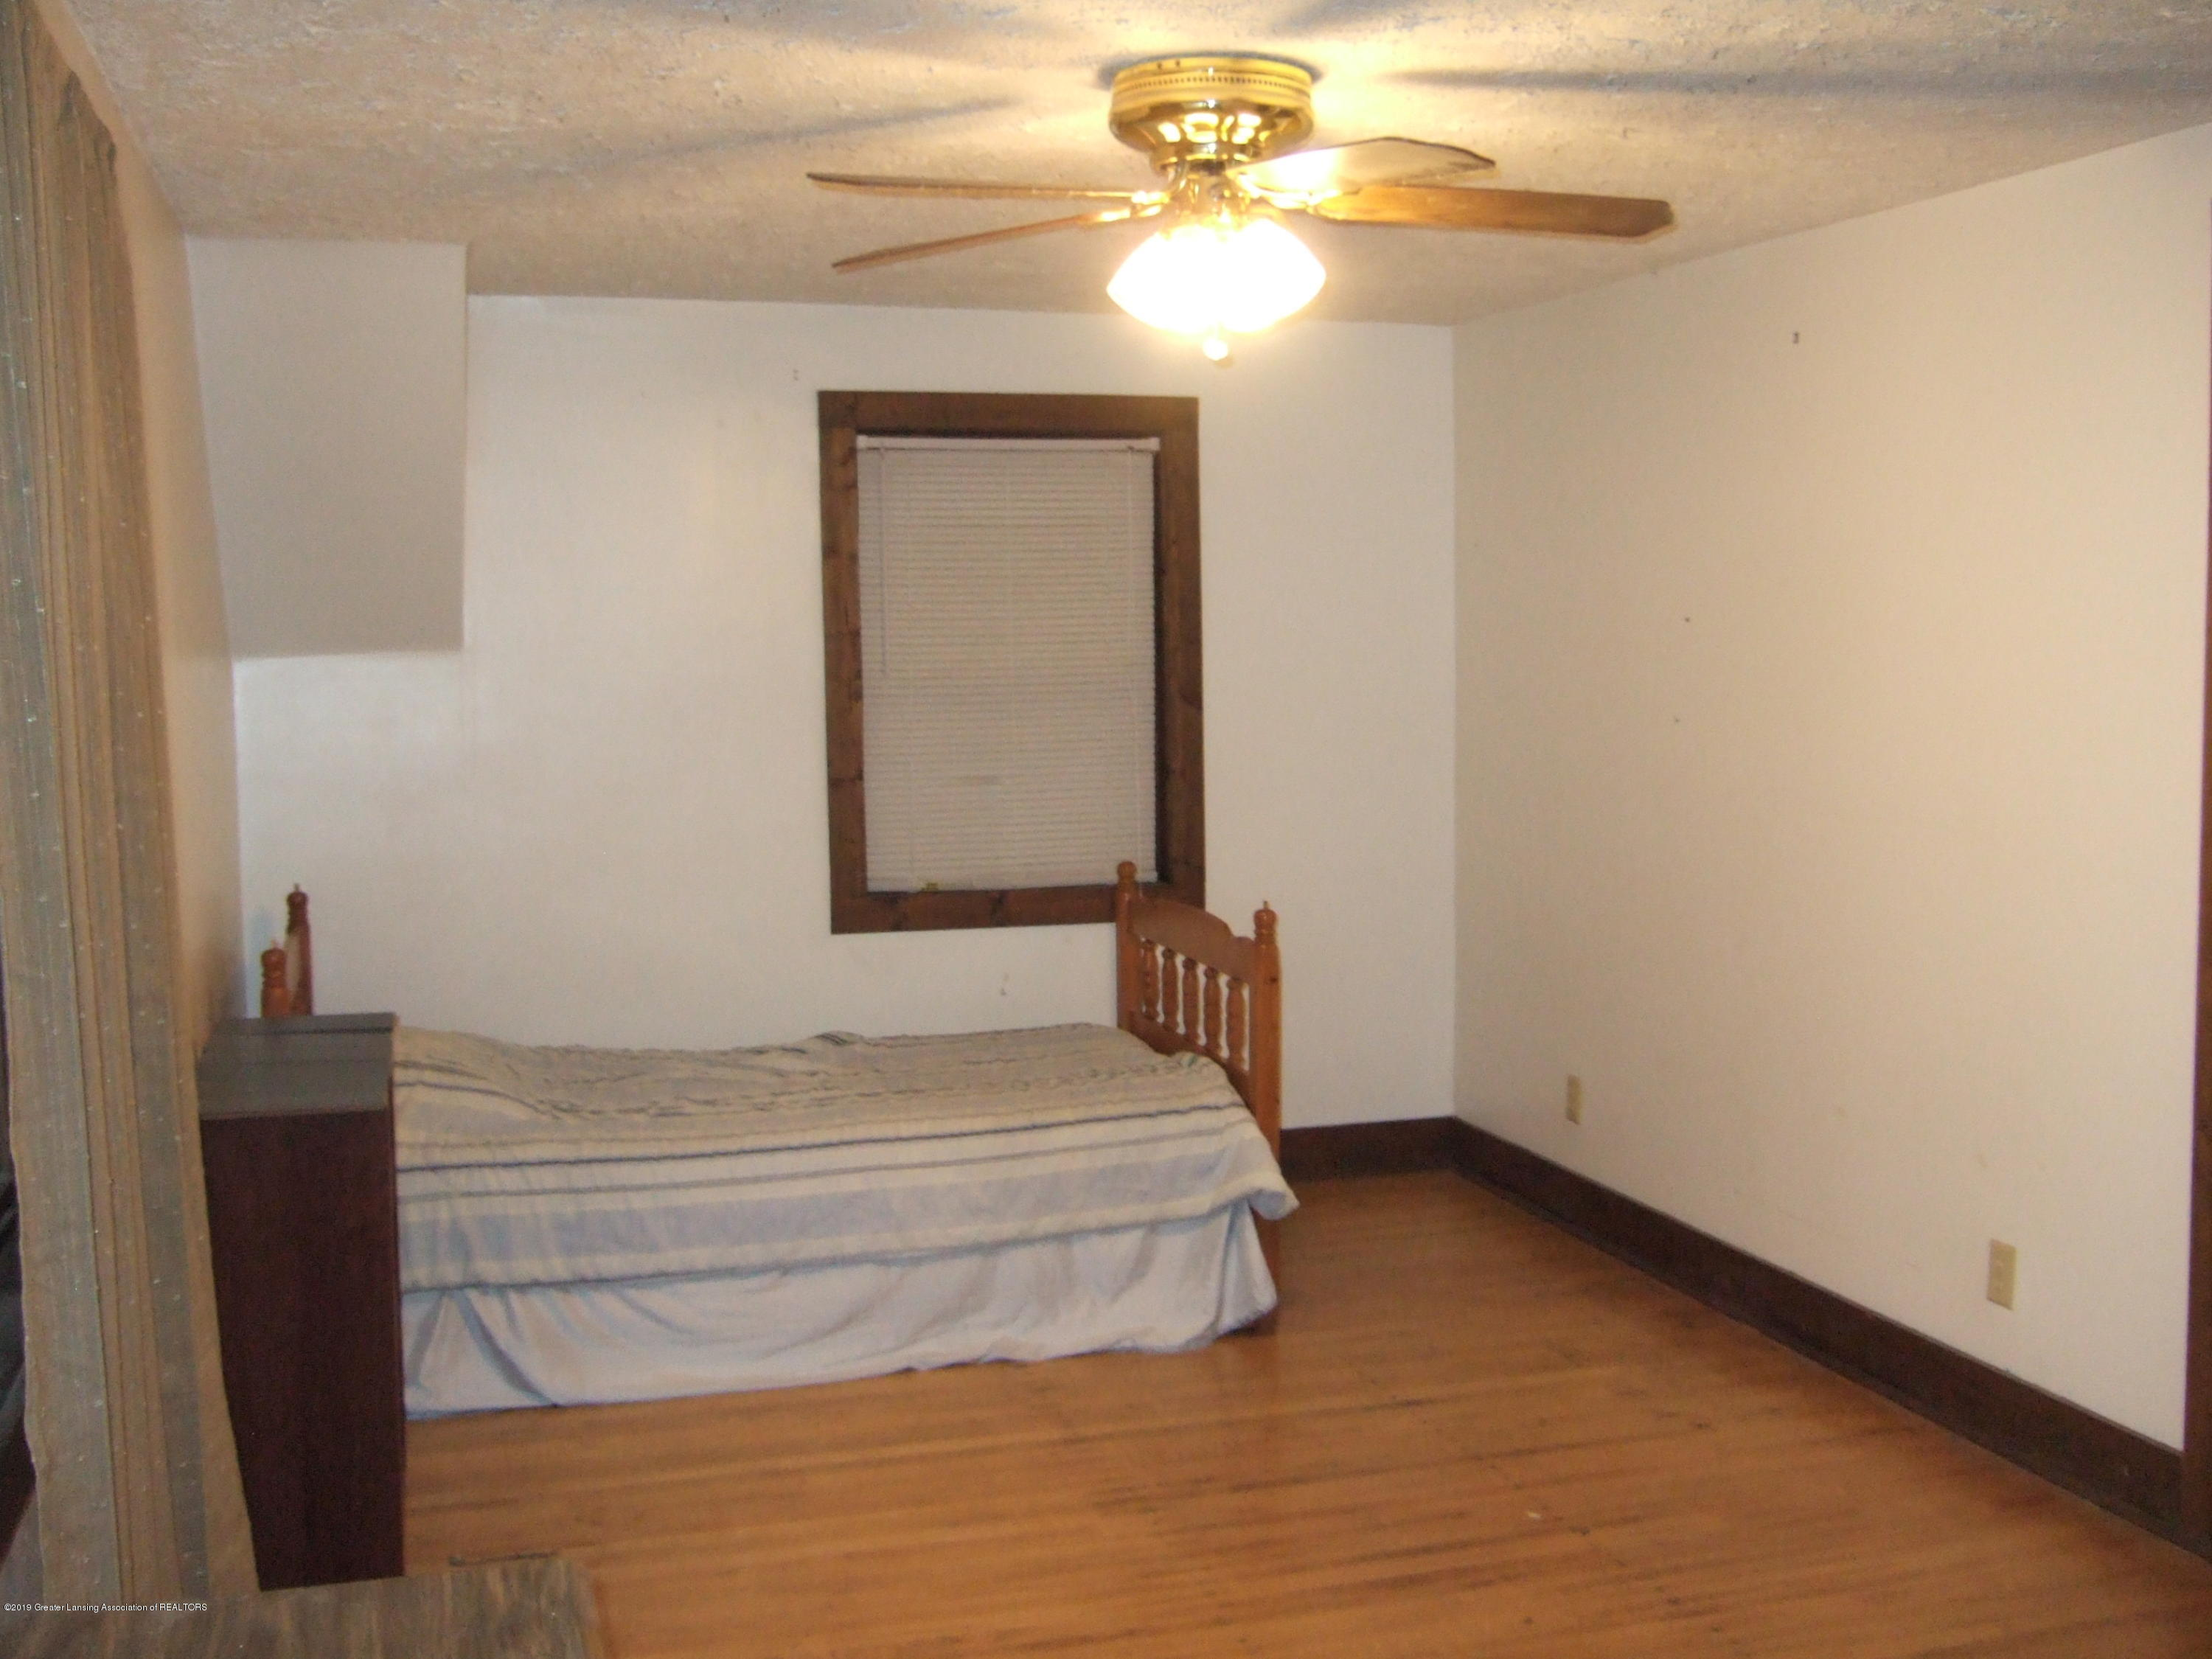 423 W Hillsdale St - 4th Bedroom - 30